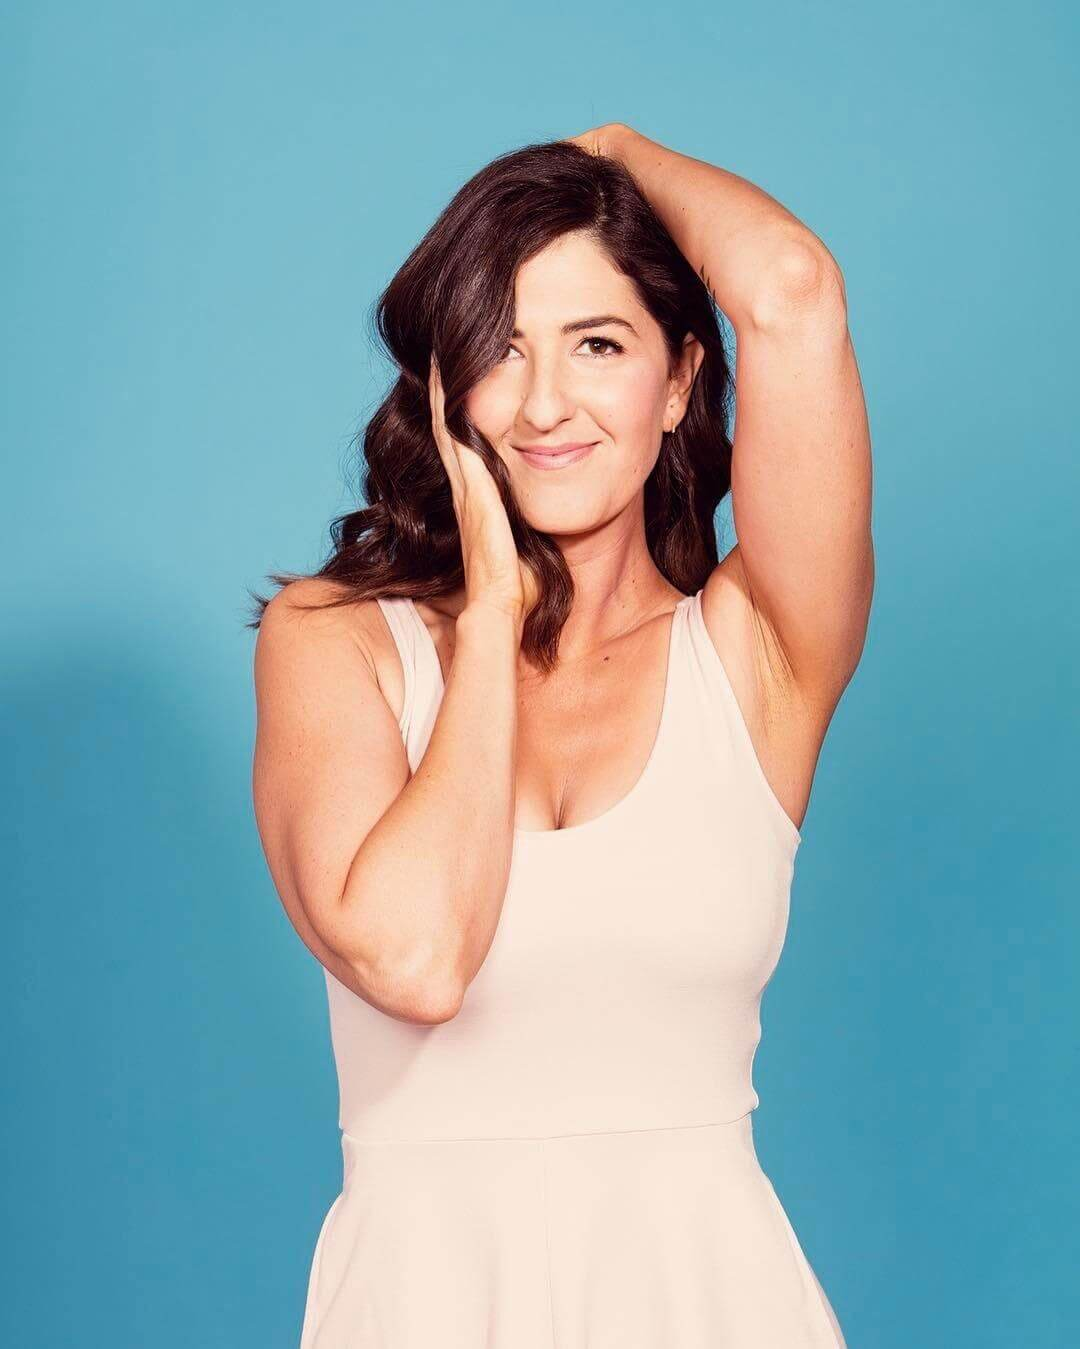 D'Arcy Carden hot boobs pic